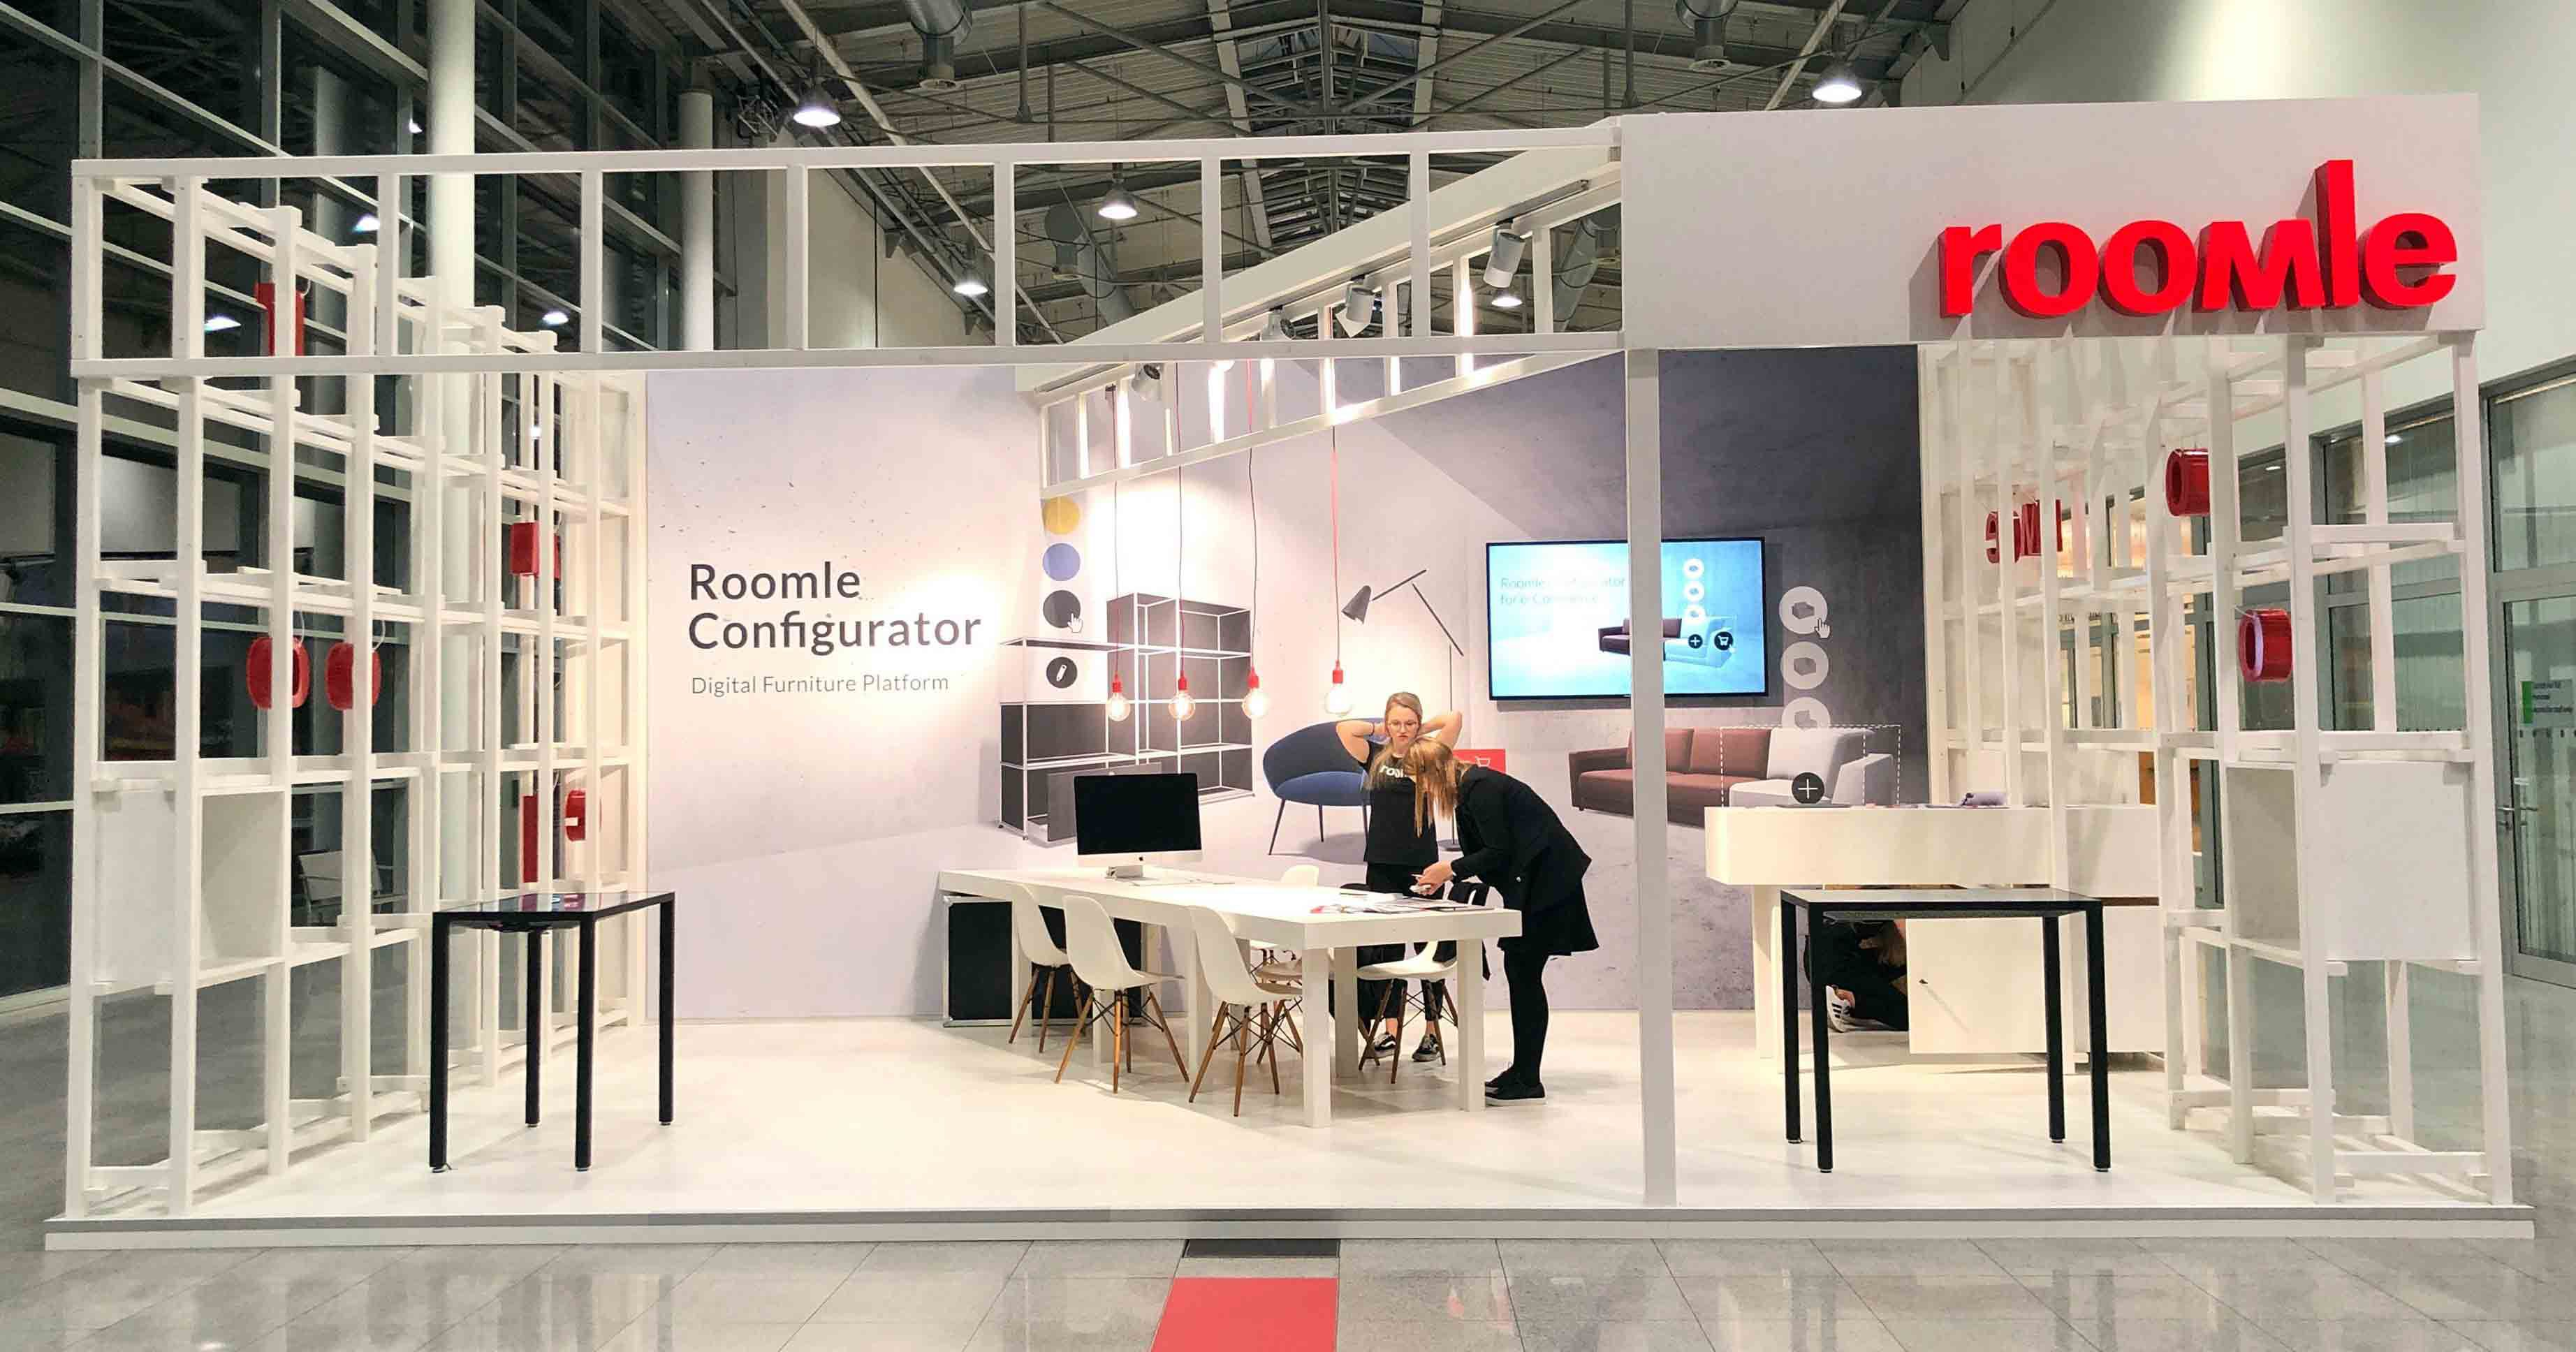 Roomle at the imm cologne 2019 image